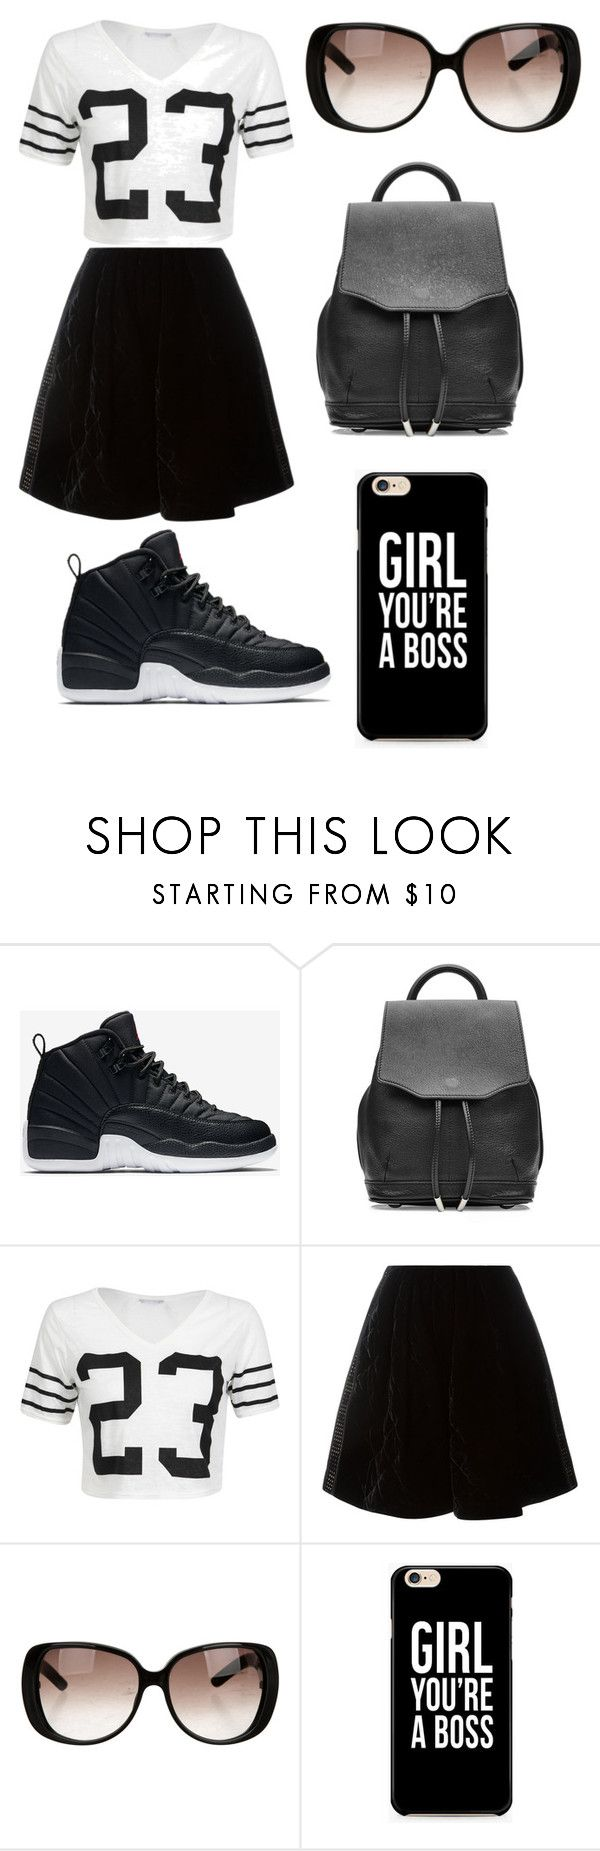 """""""Black and White Jordan 12"""" by lifeissweet170000 ❤ liked on Polyvore featuring NIKE, rag & bone, Fendi and Gucci"""